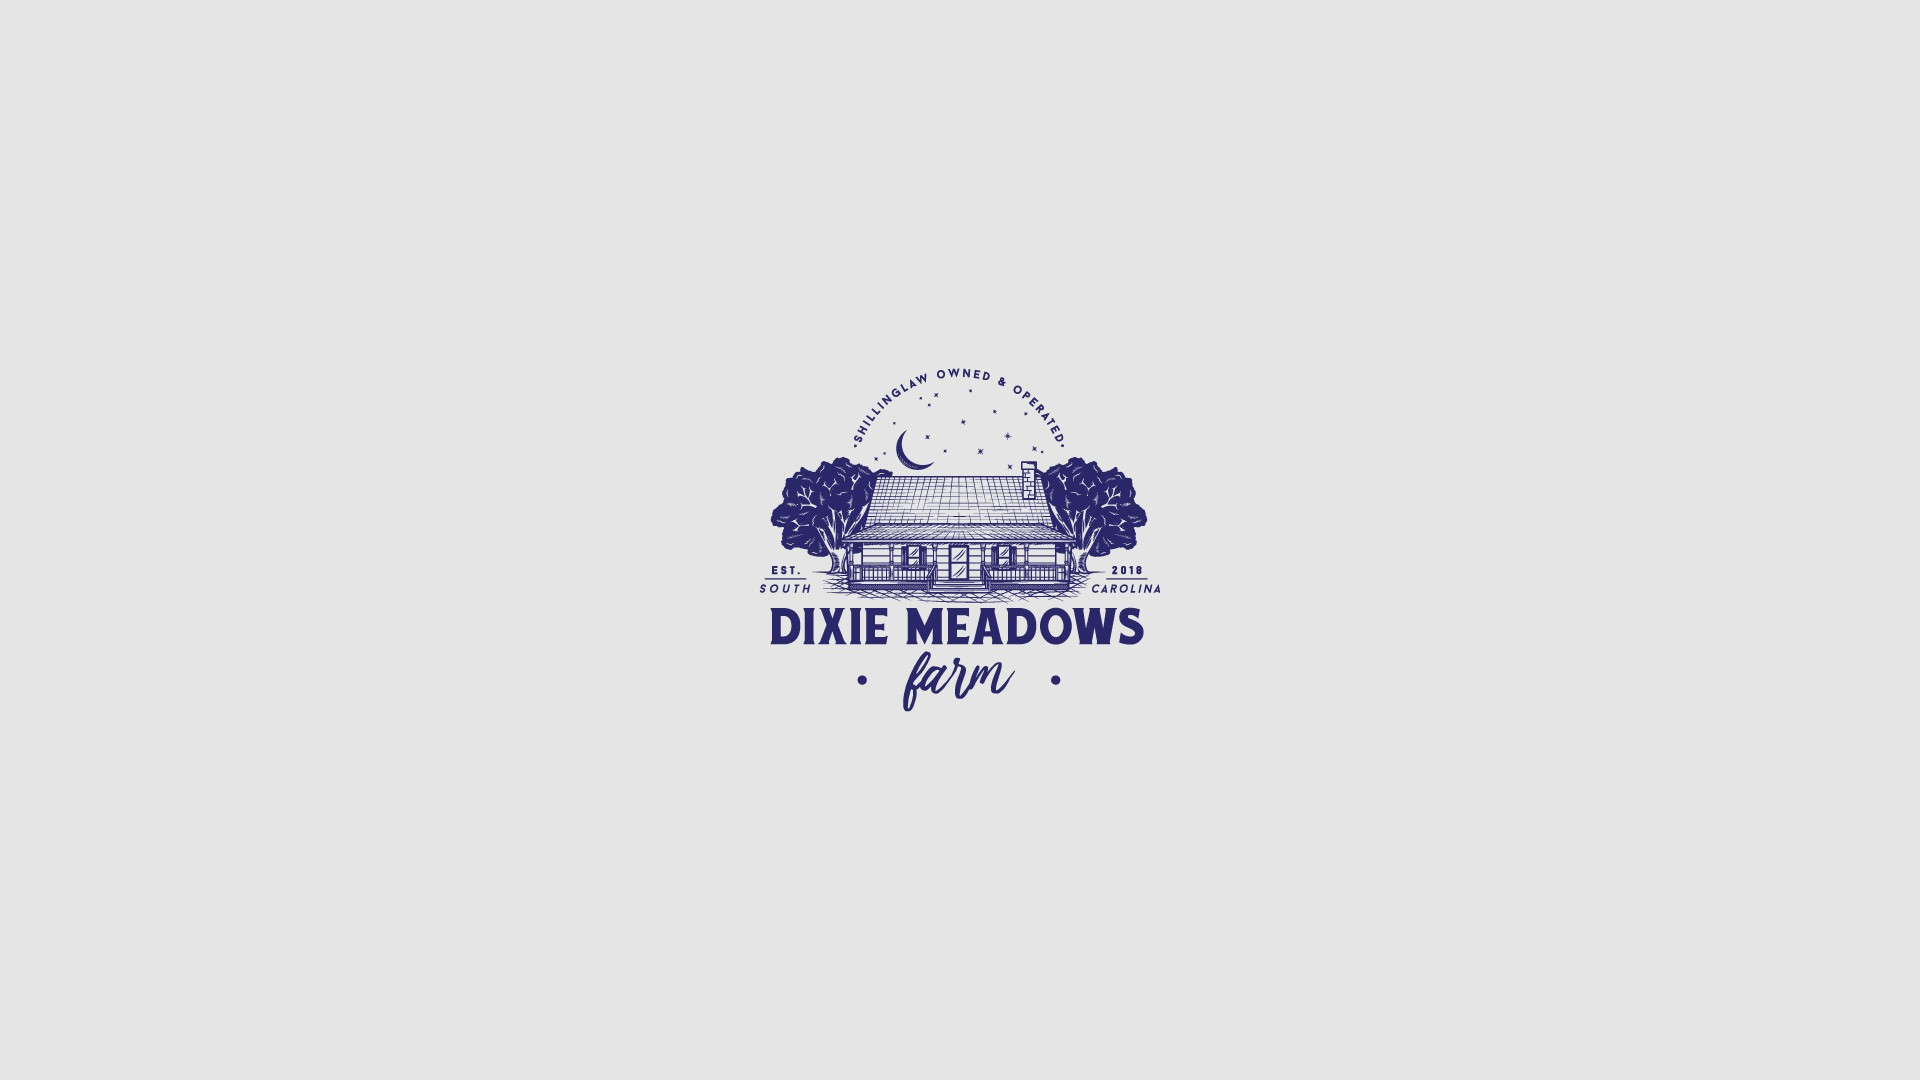 Create a classic branding logo for Dixie Meadows Farm